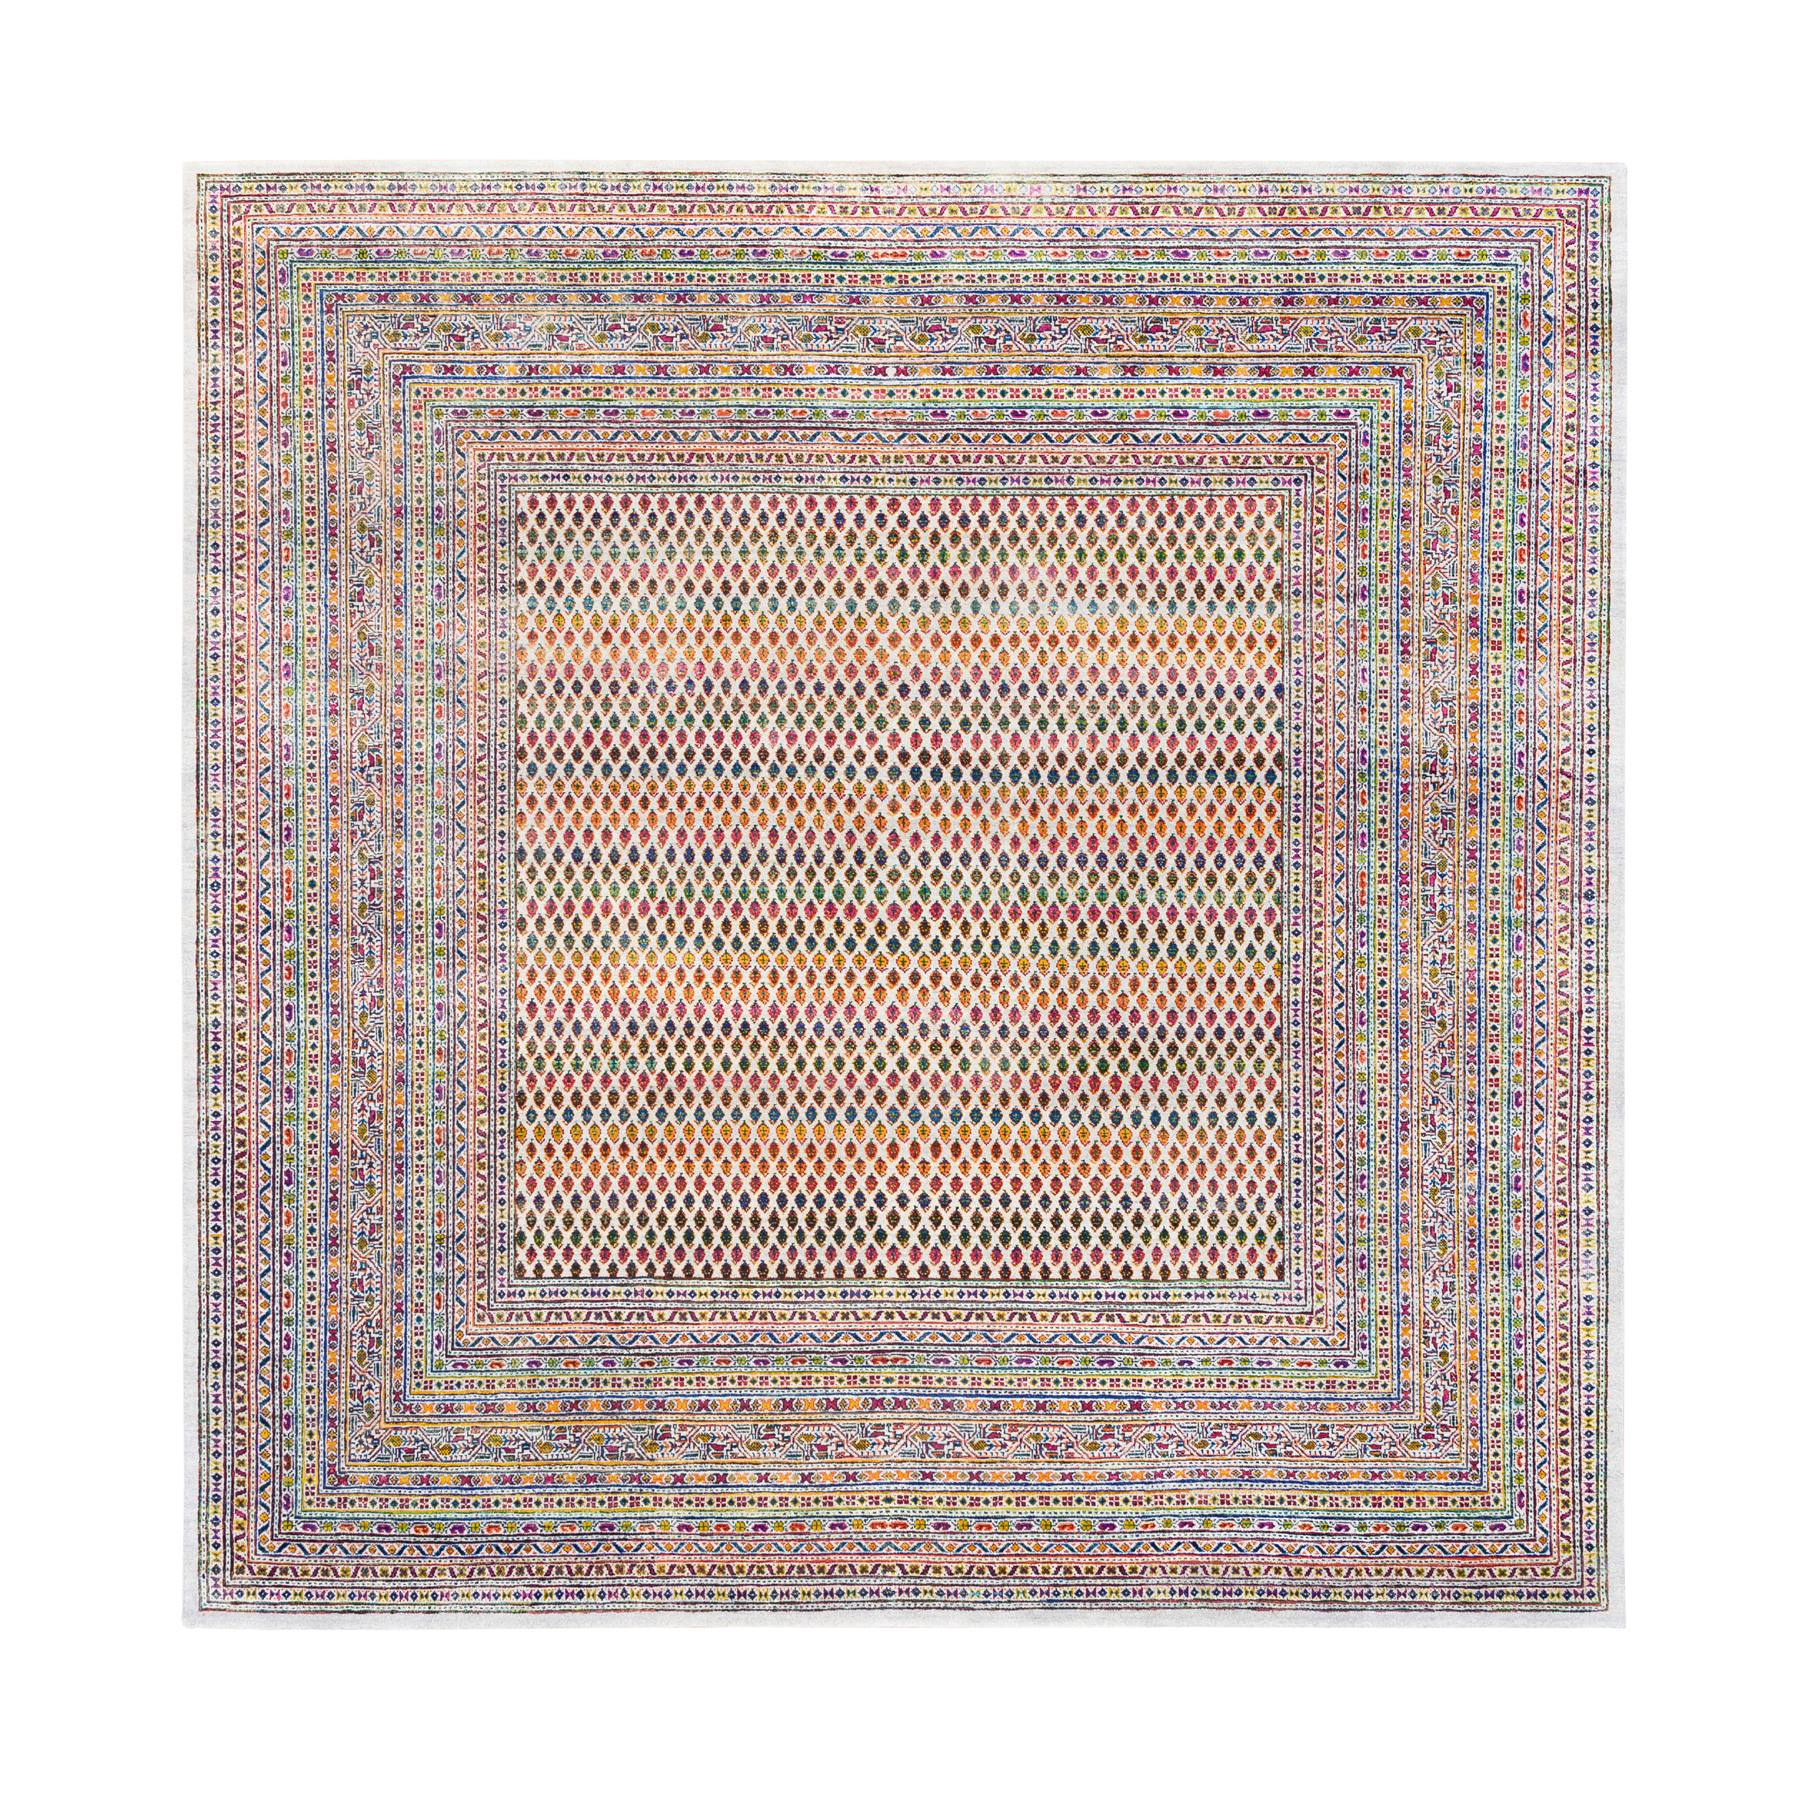 Modern & Contemporary Rugs LUV560790